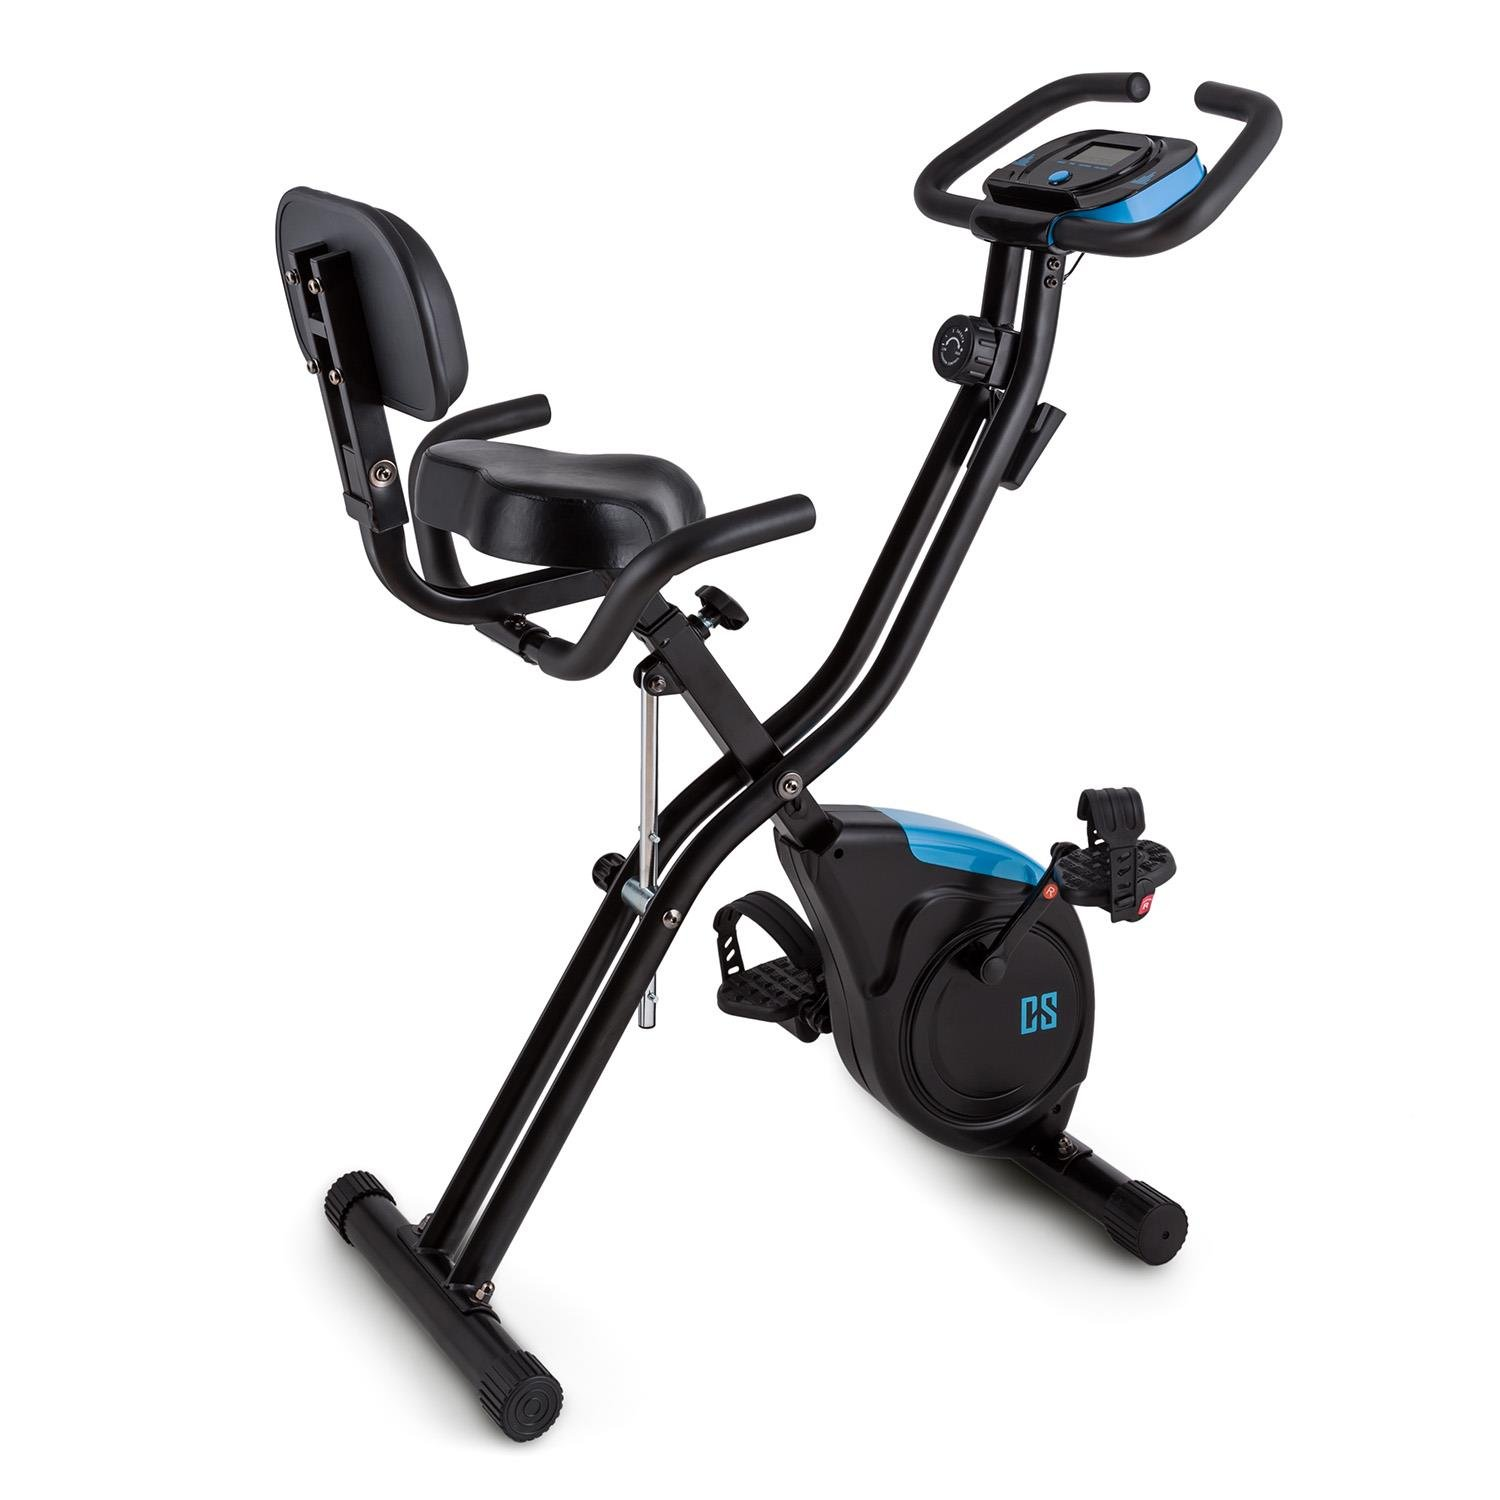 Capital Sports Azura 2 bicicleta estática plegable